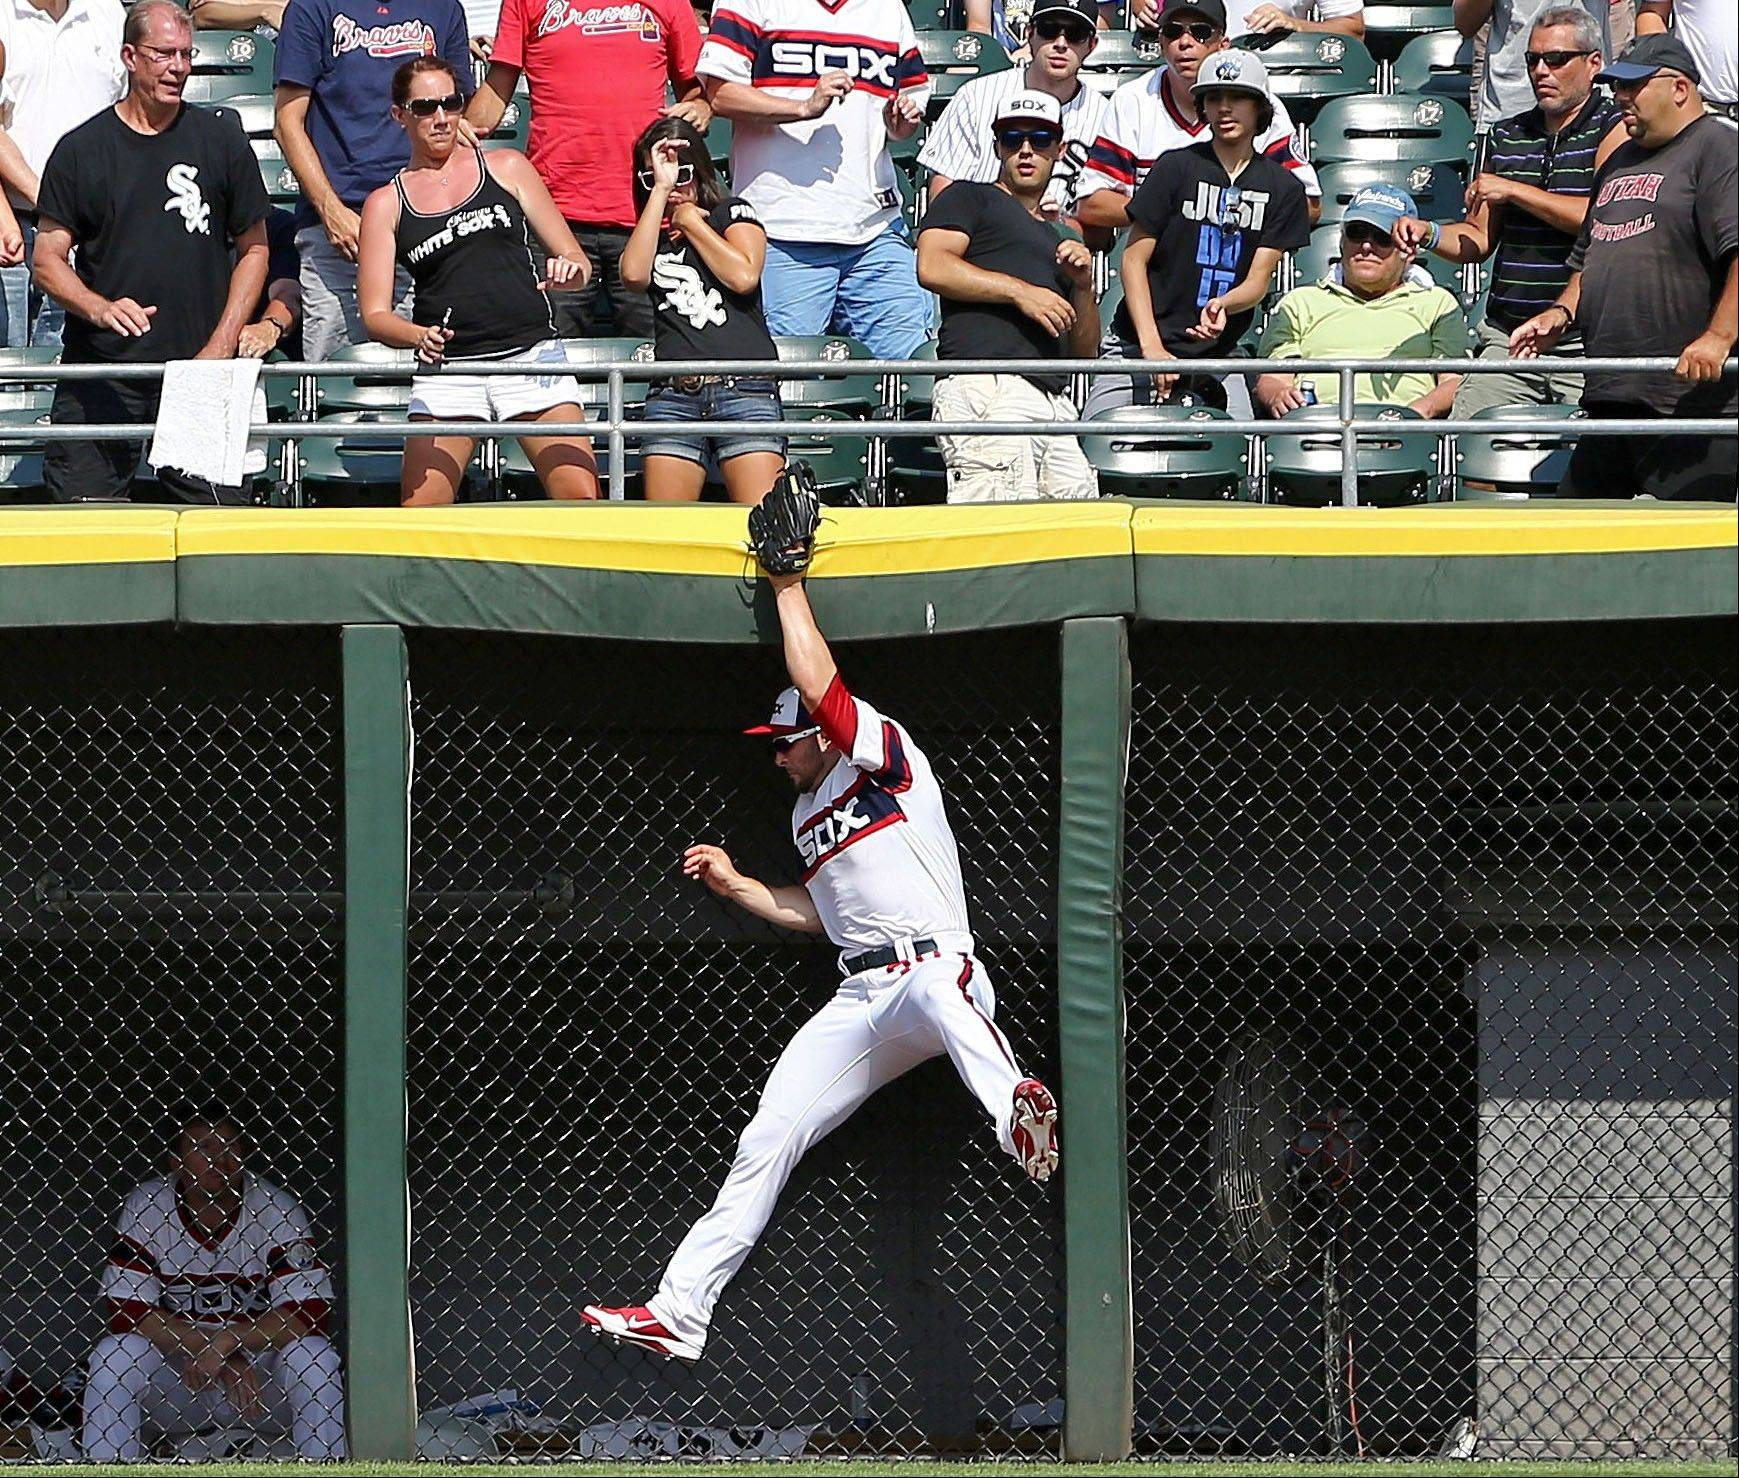 White Sox left fielder Casper Wells robs the Braves' Reed Johnson of a would-be, game-tying home run in the eighth inning Sunday.